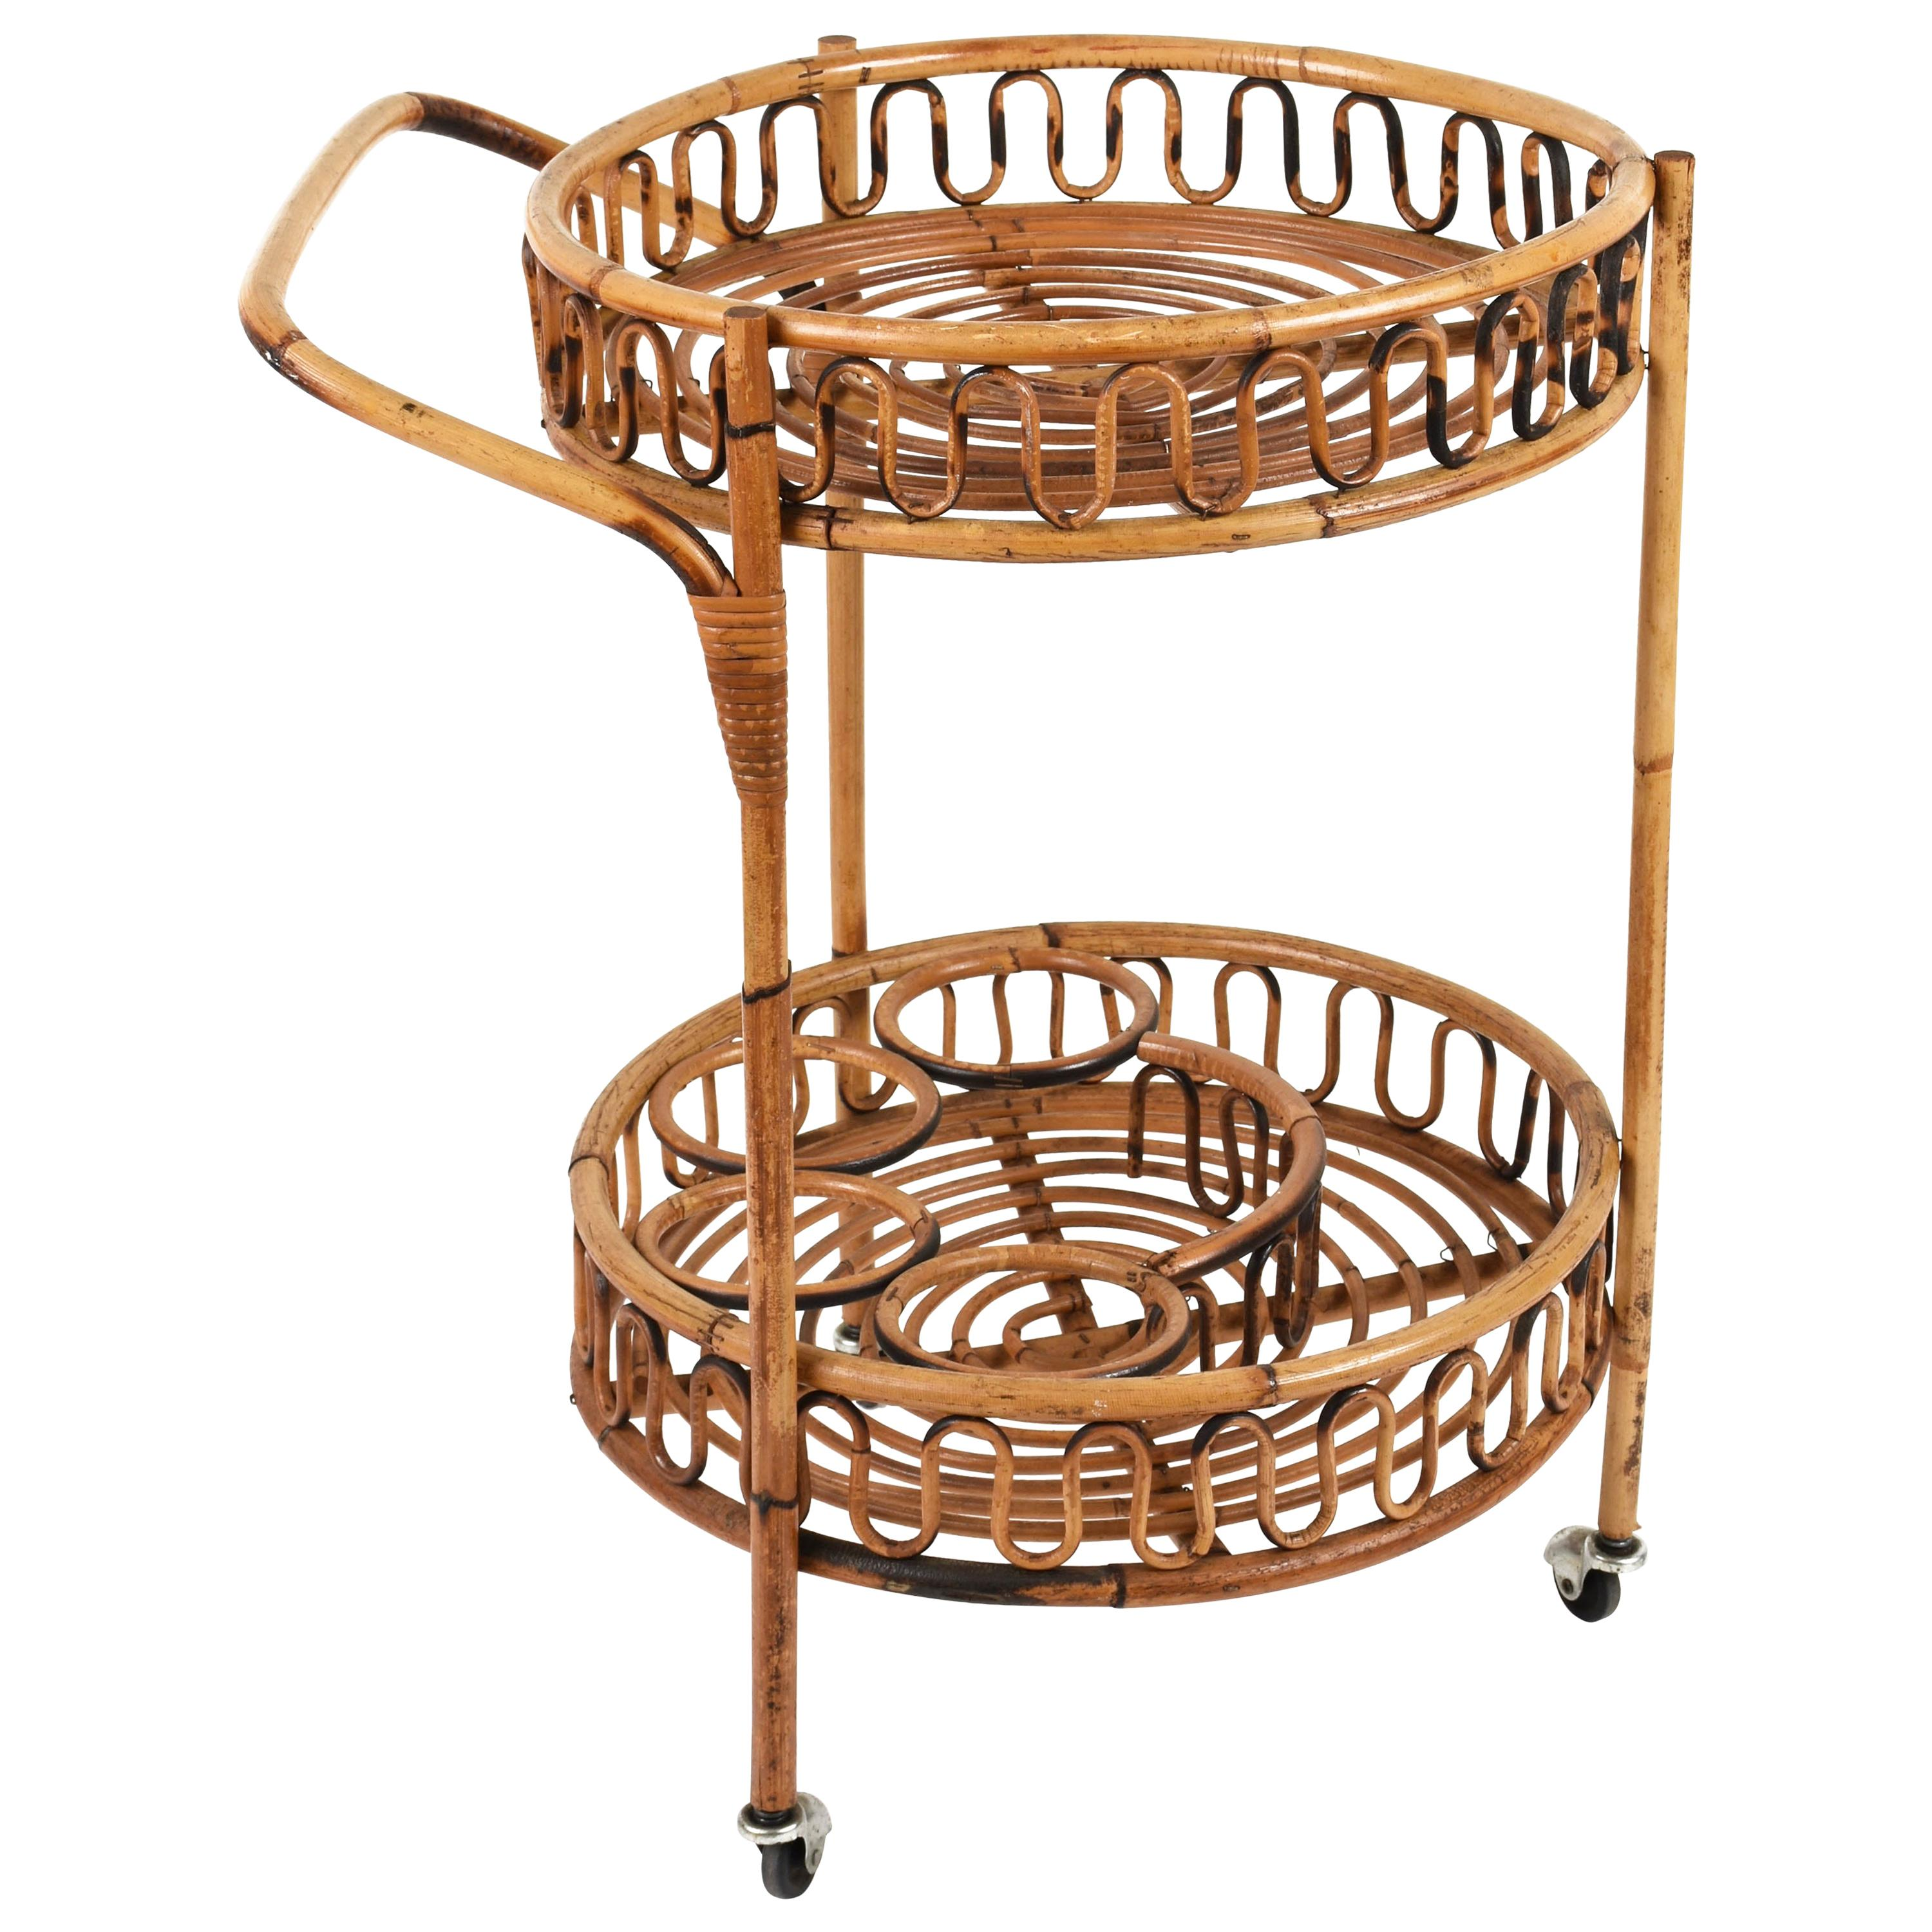 Midcentury Italian Bamboo and Rattan Round Serving Bar Cart Side Table, 1960s